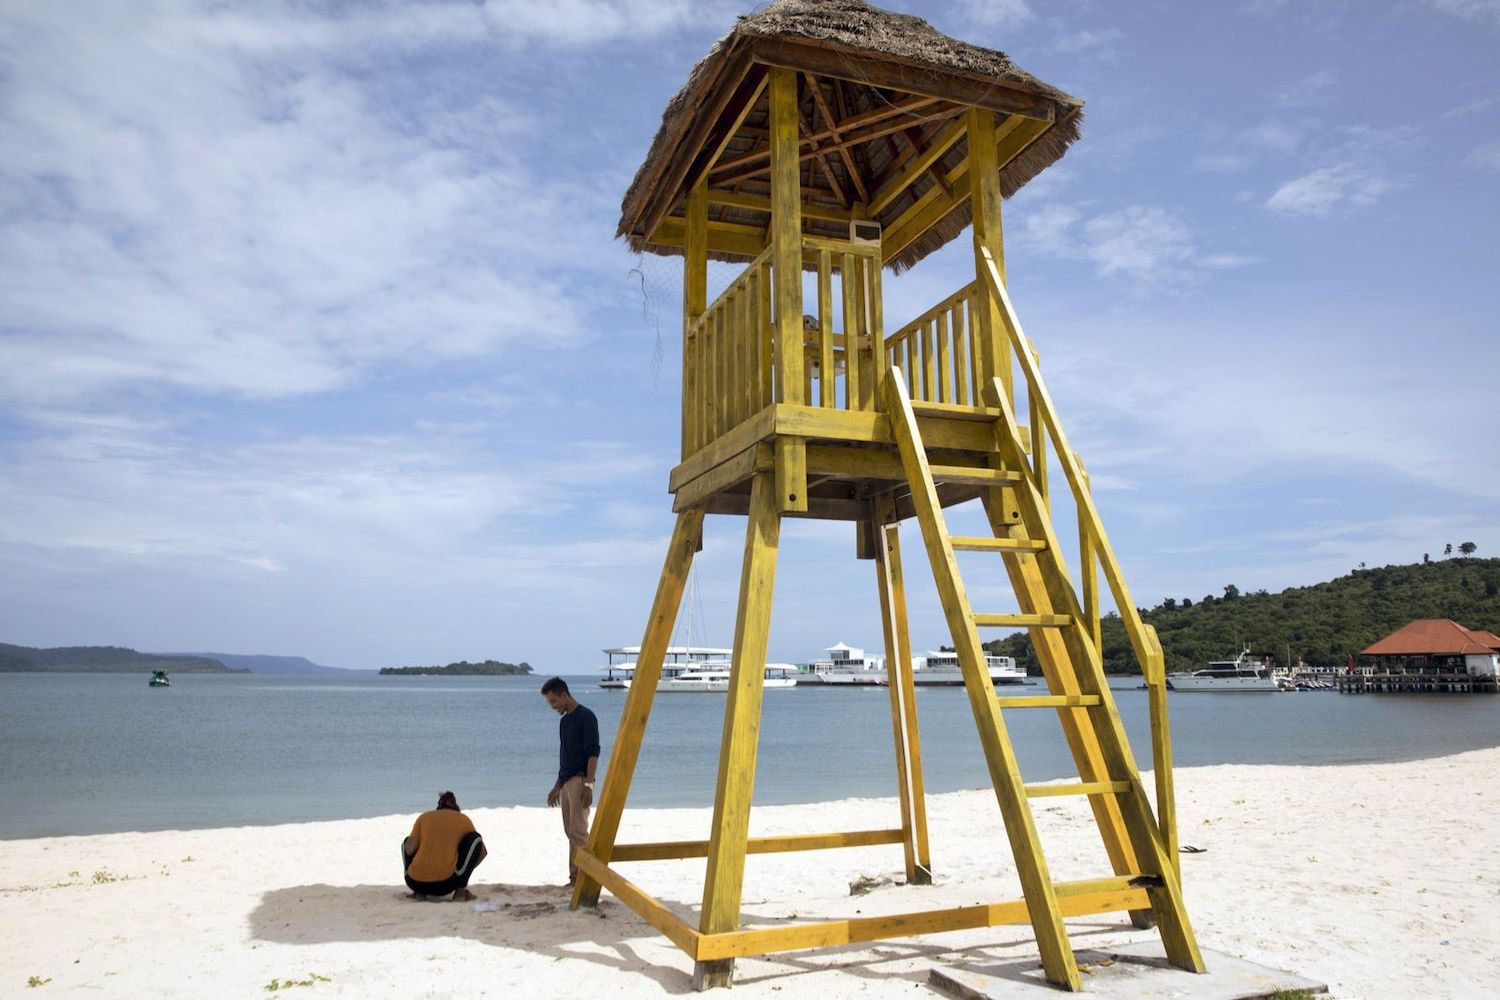 A lookout tower stands on the beach at Dara Sakor Seashore Resort in Botum Sakor district of Koh Kong, Cambodia. (Bloomberg Photo)